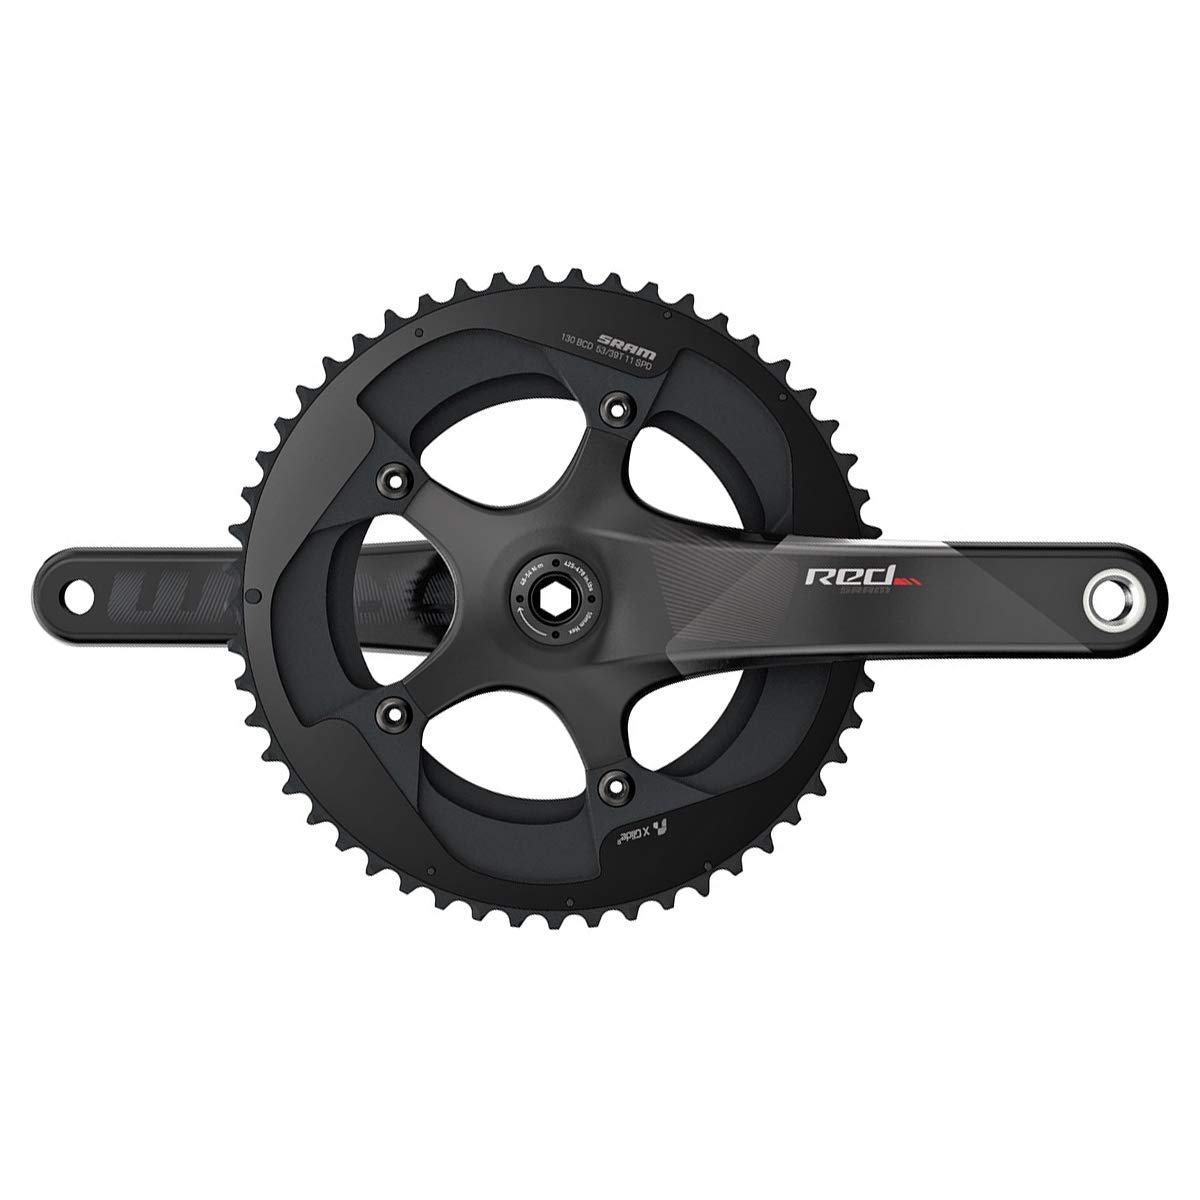 スラム RED22 GXP Crankset 52-36T 175mm   B0187ZT58M